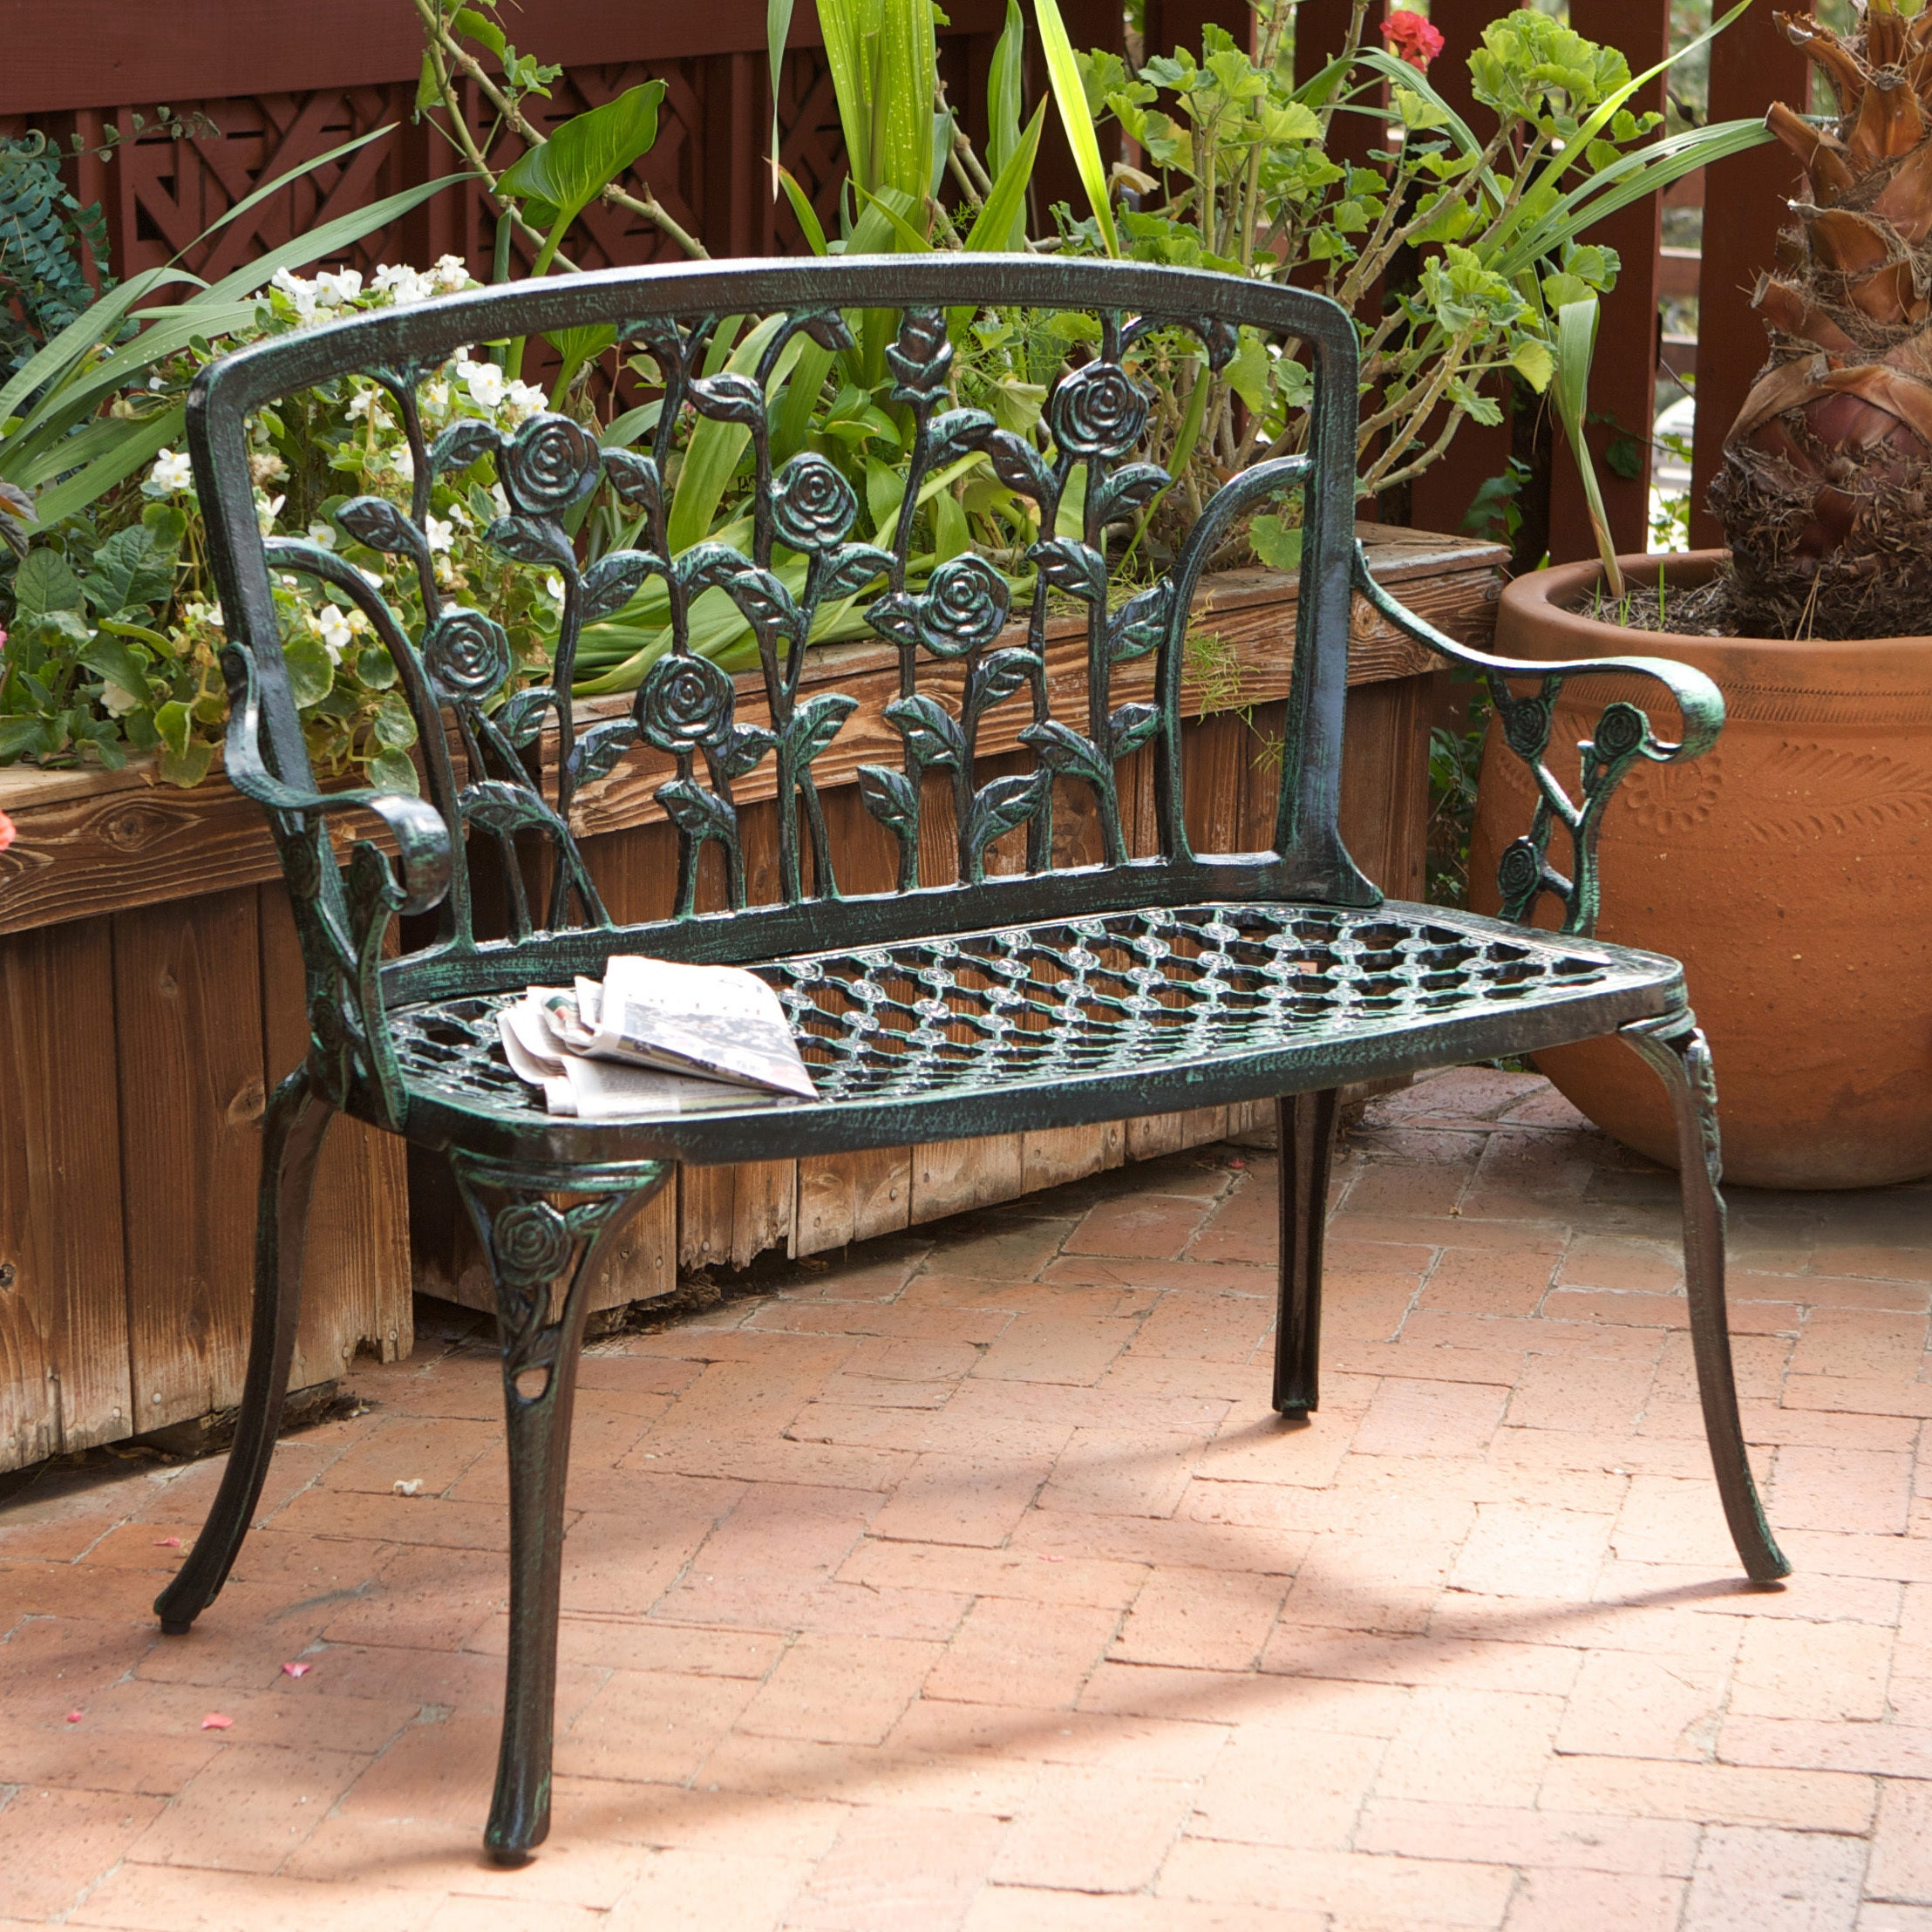 Superb Cast Aluminum Patio Bench Green Metal Elegant Outdoor Curved Arms Yard Bench  NEW